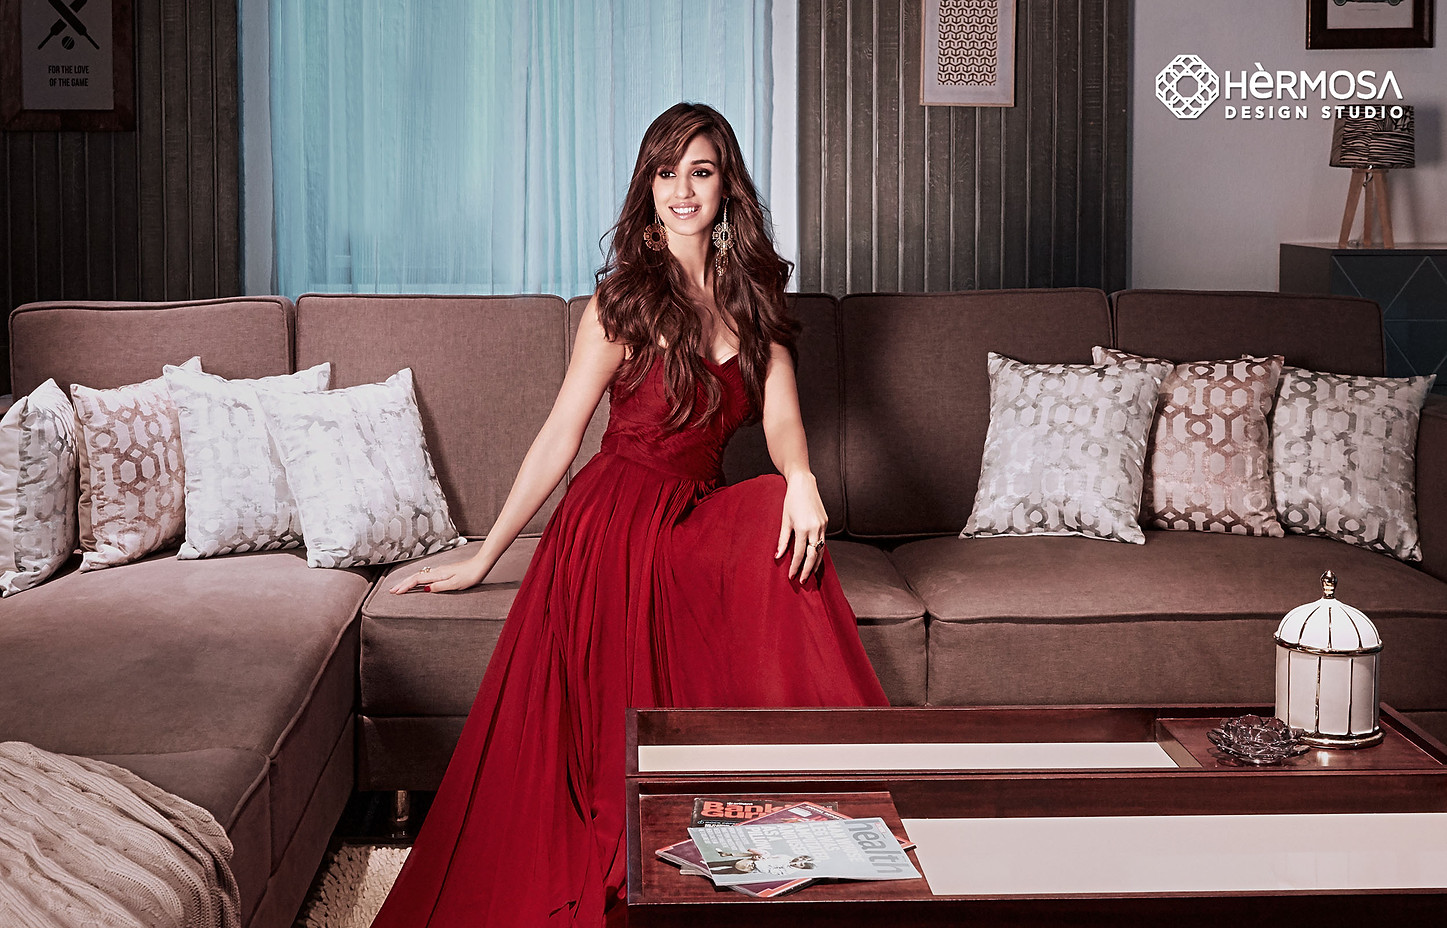 DISHA PATANI - HERMOSA DESIGN STUDIO